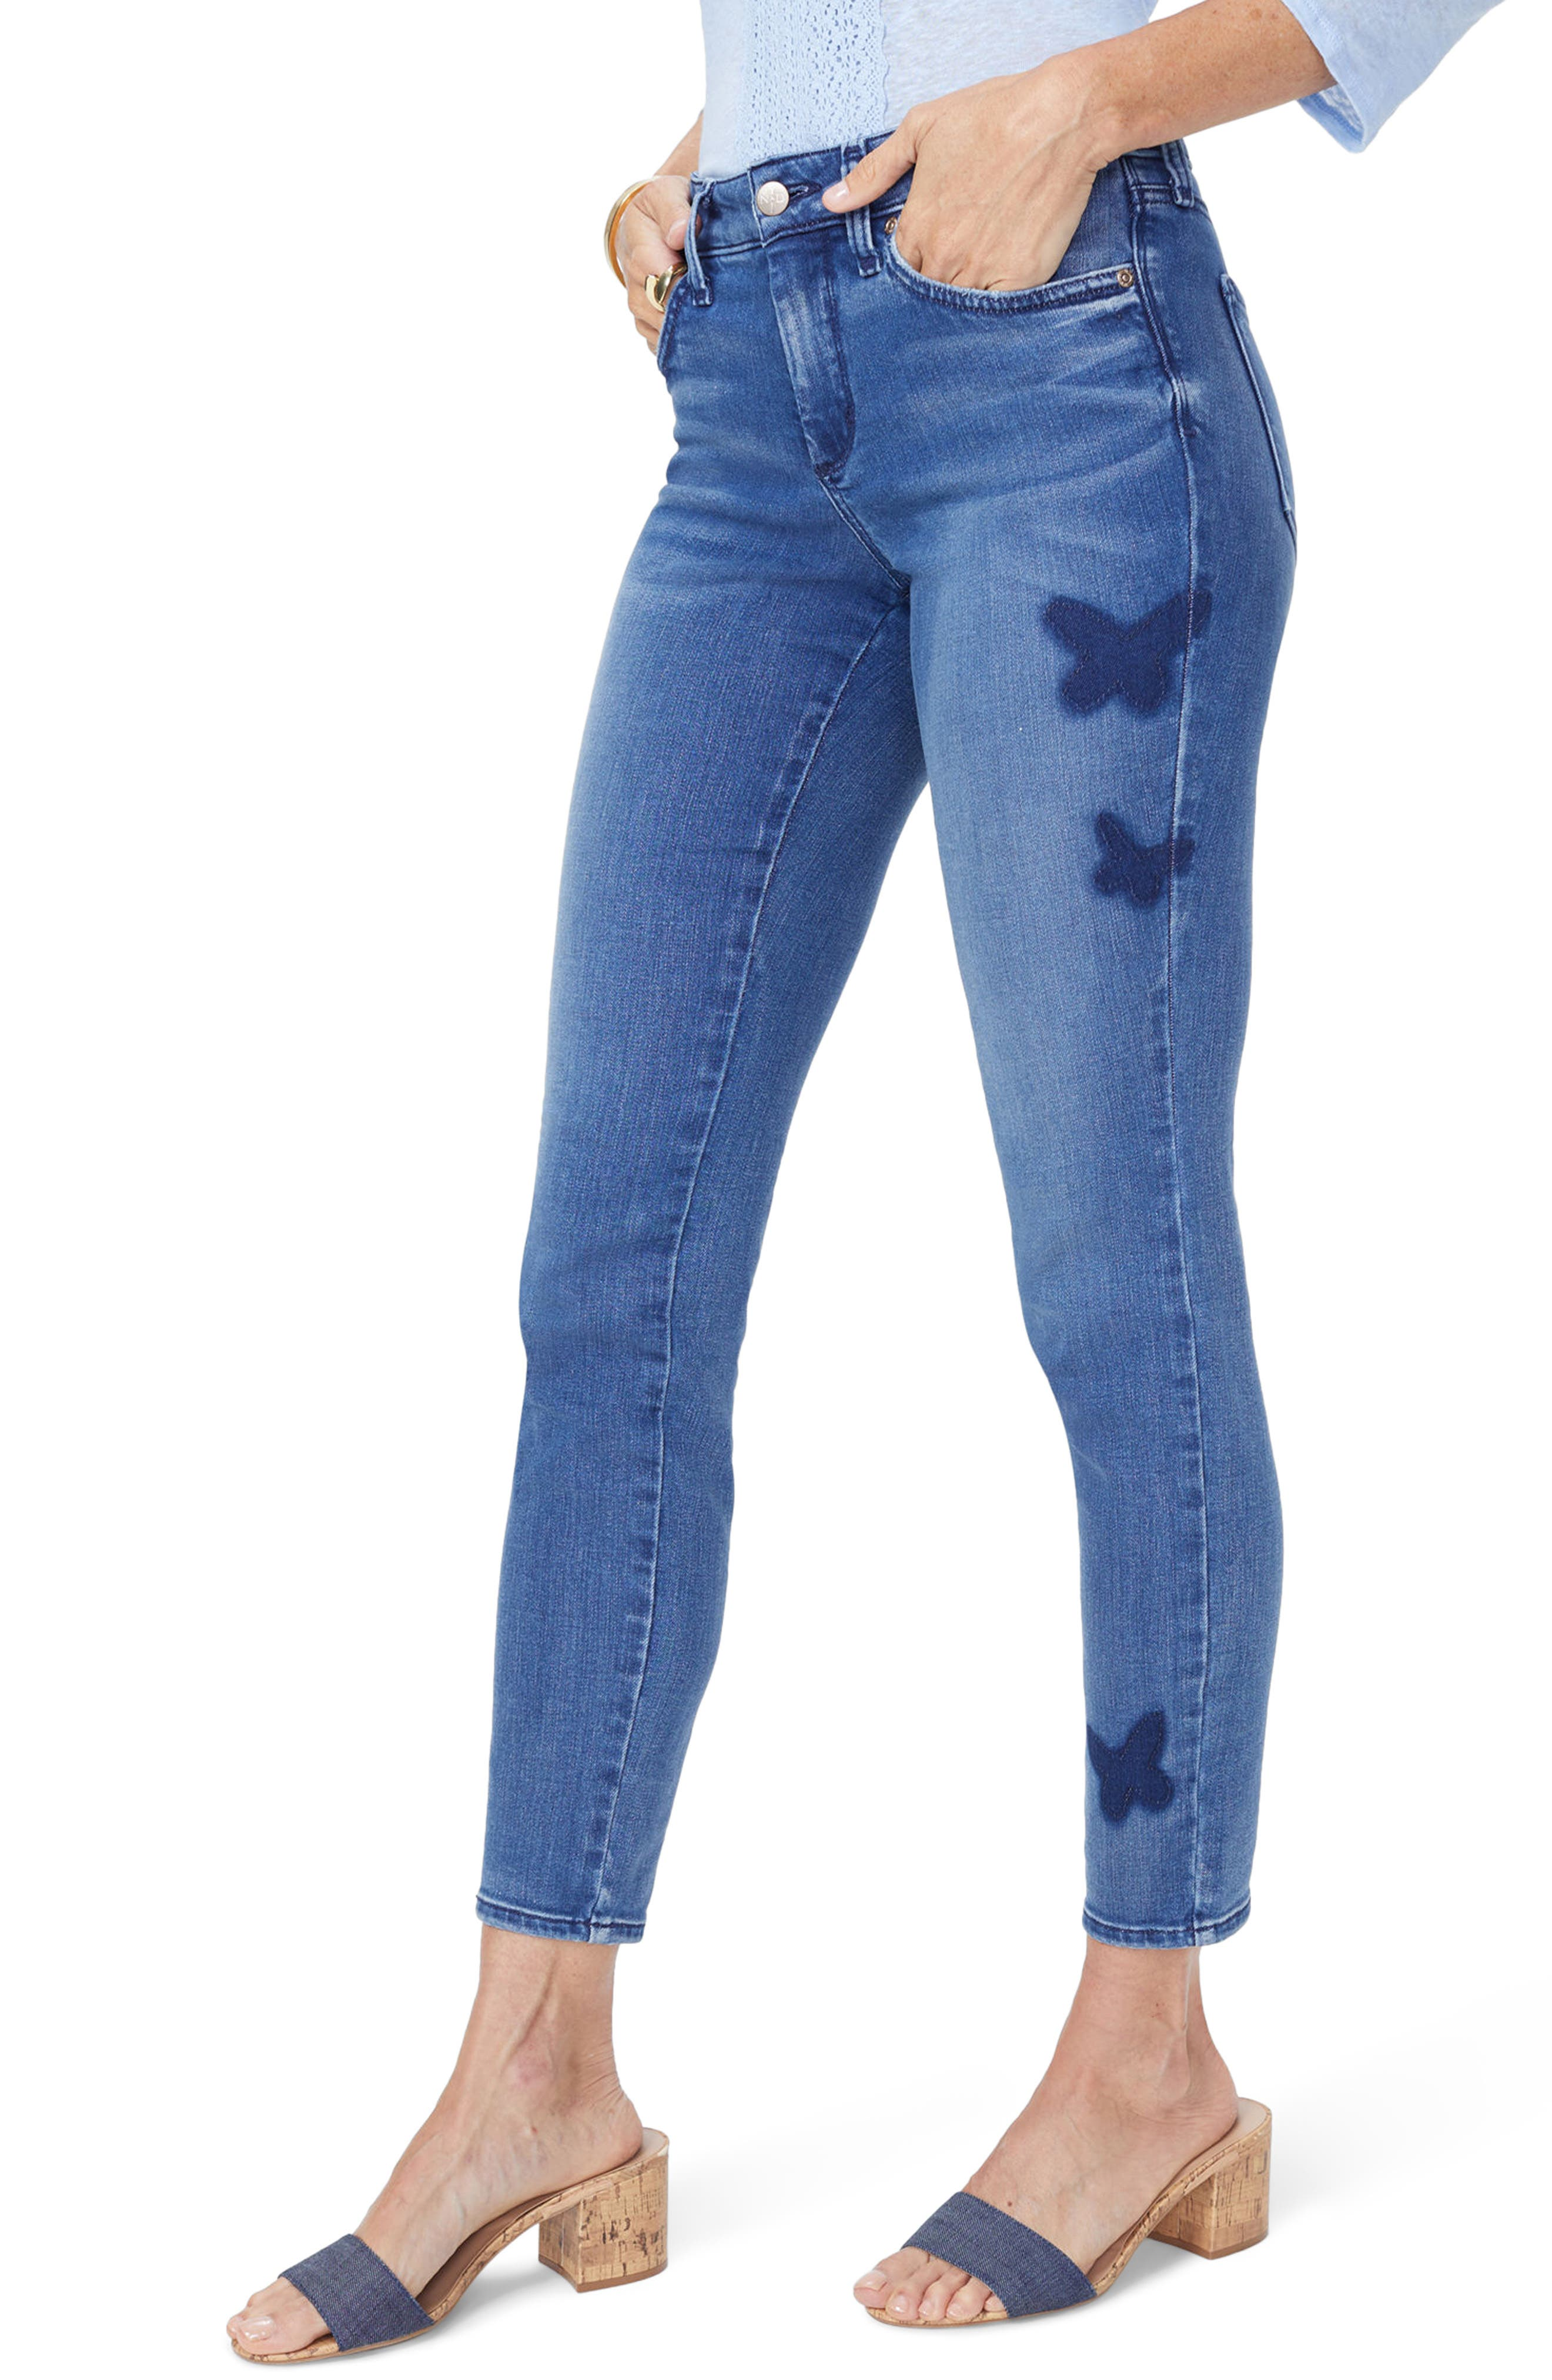 Ami Butterfly Skinny Jeans,                         Main,                         color,